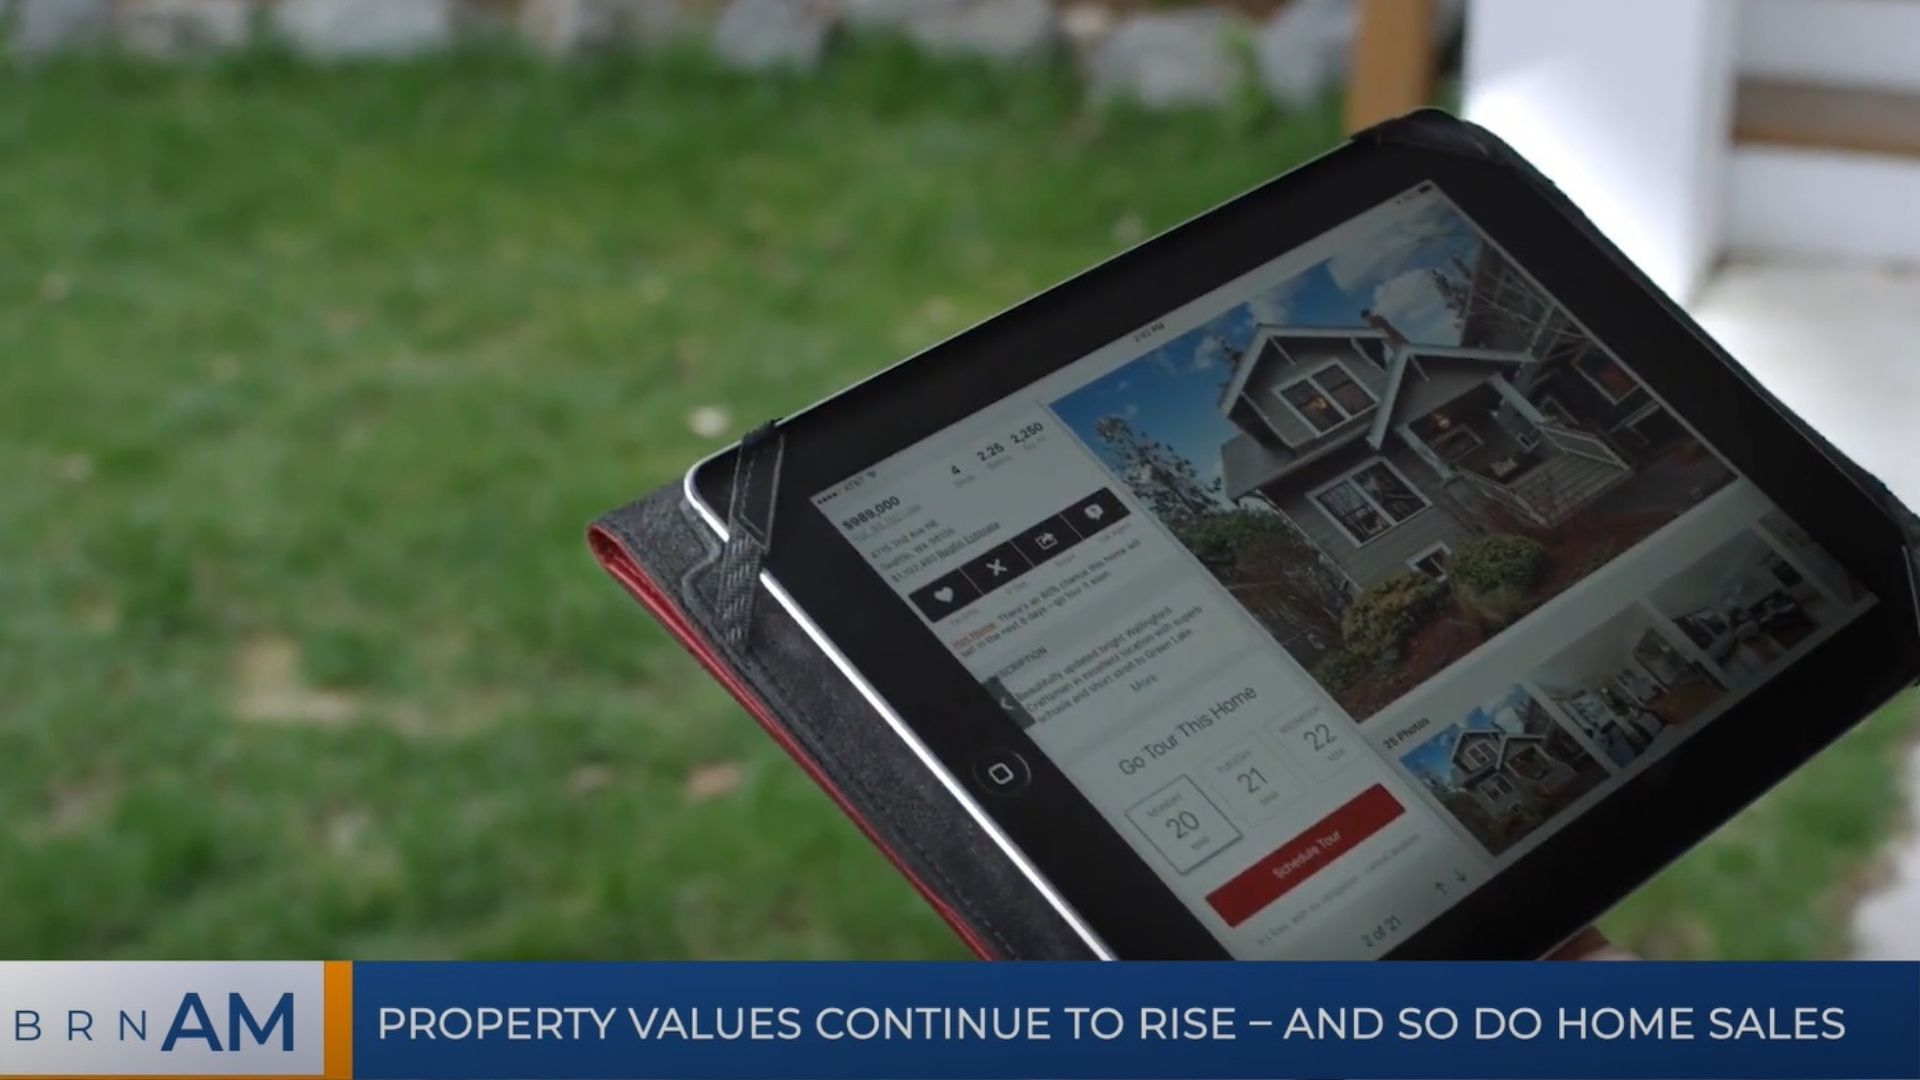 BRN AM   Property values continue to rise – and so do home sales